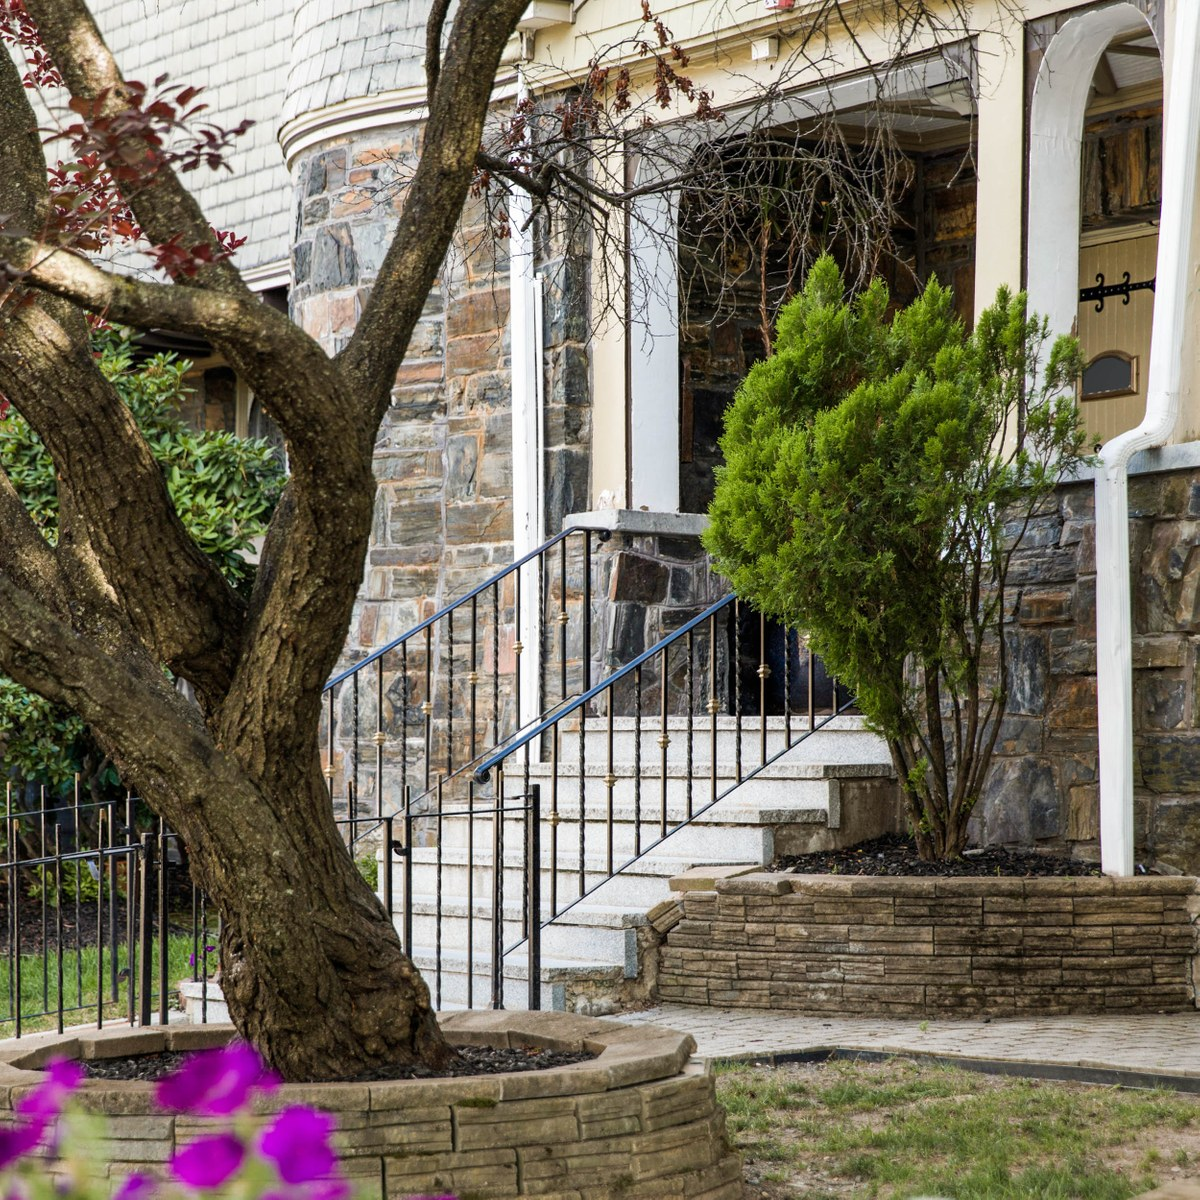 Local Com Homes For Rent: Winter Hill, Somerville MA - Neighborhood Guide